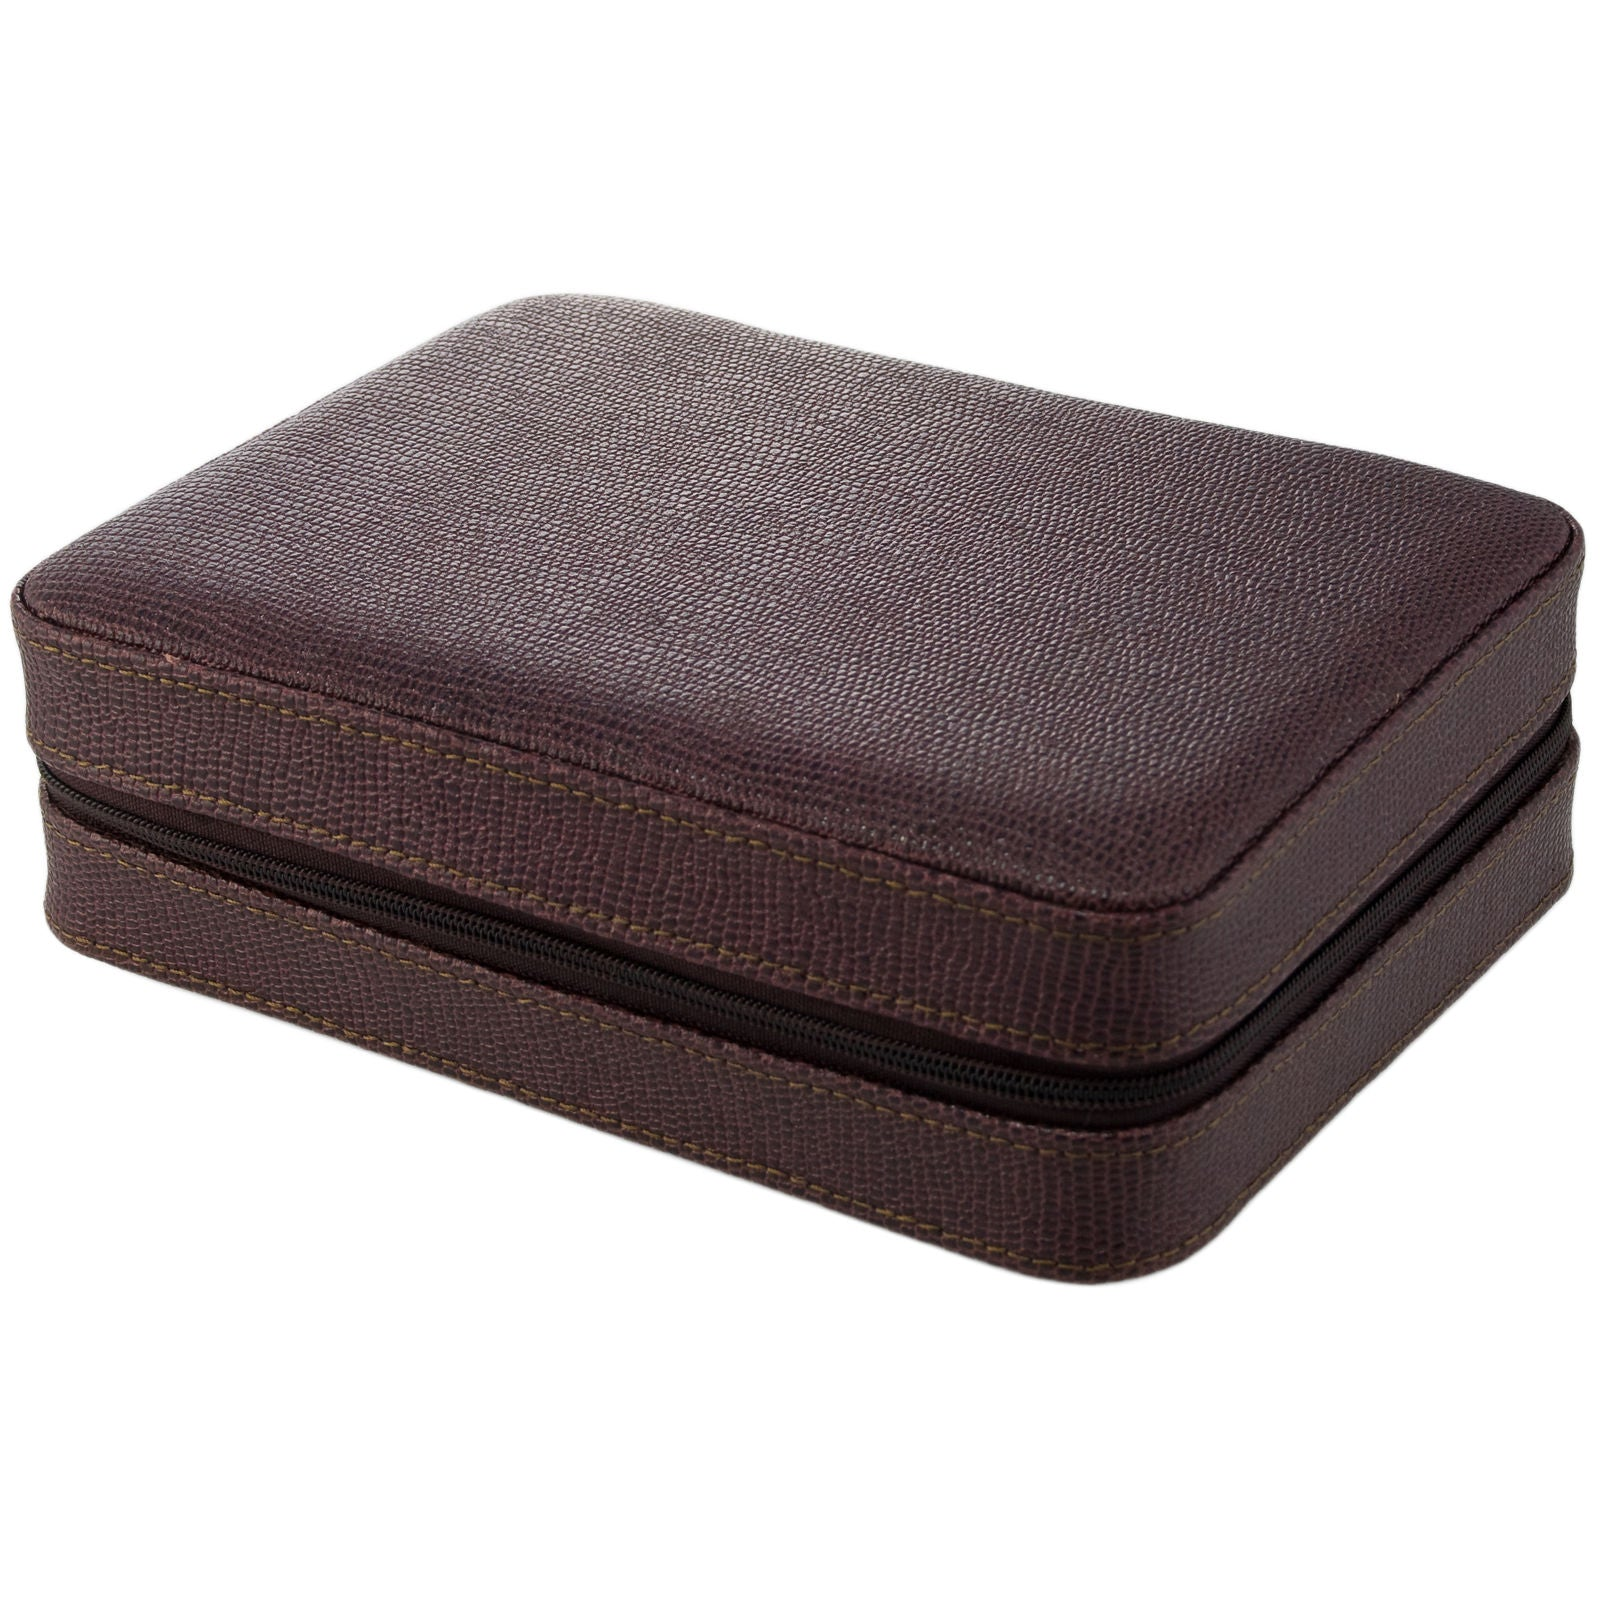 Watch Boxes 4 Watch Travel Case Leather Brown Lizard Pattern